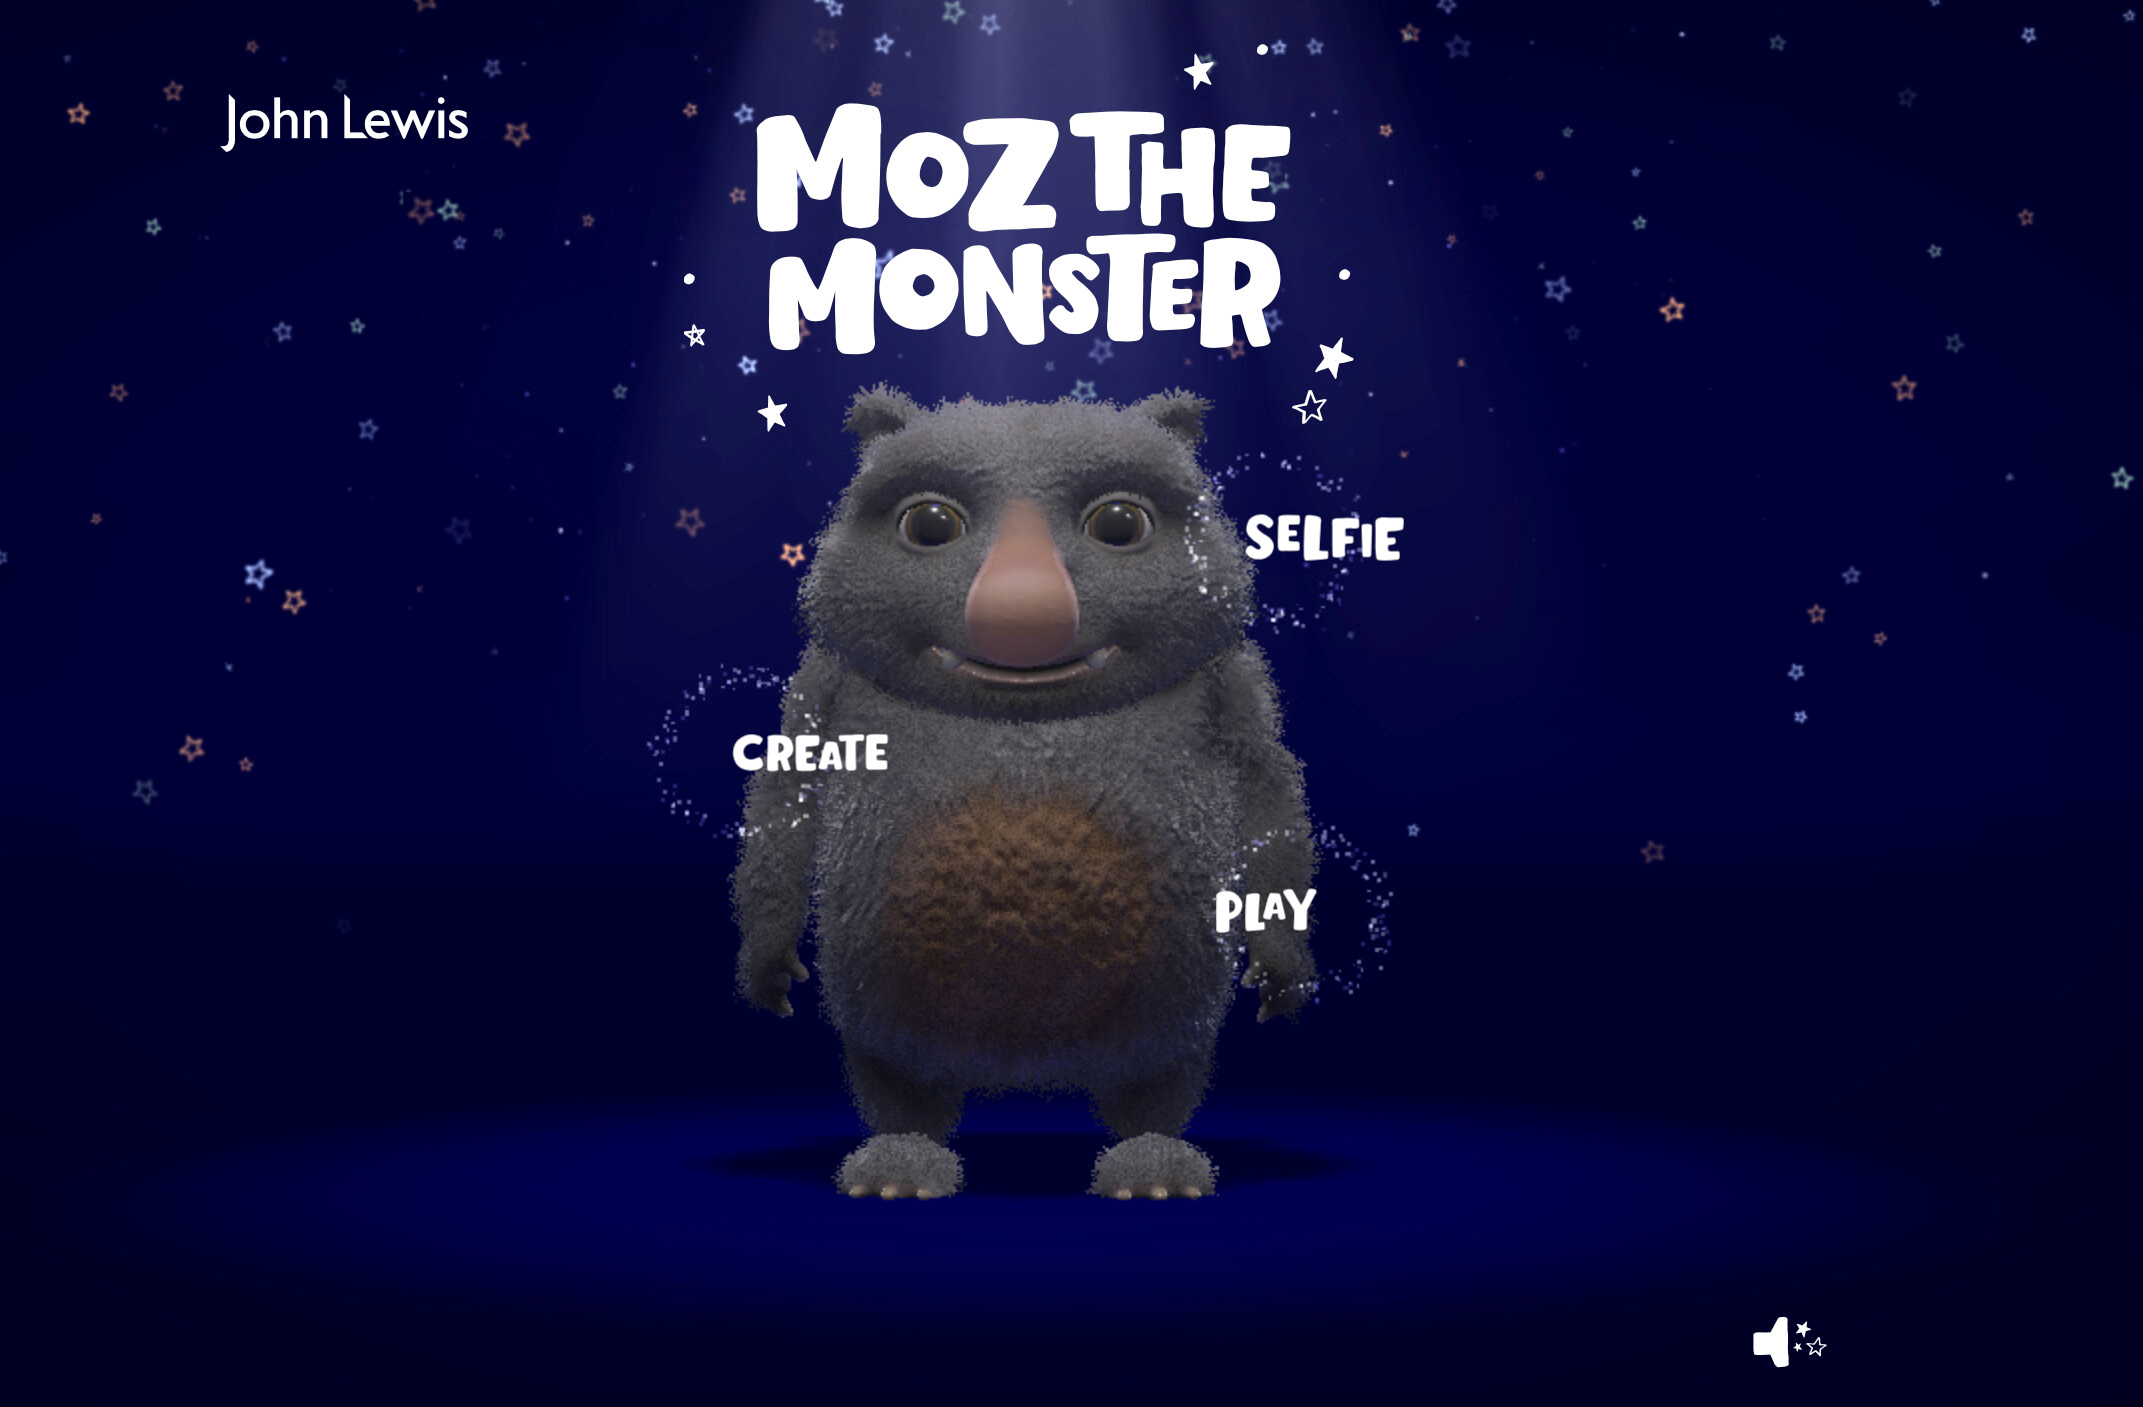 john_lewis_moz_the_monster_site